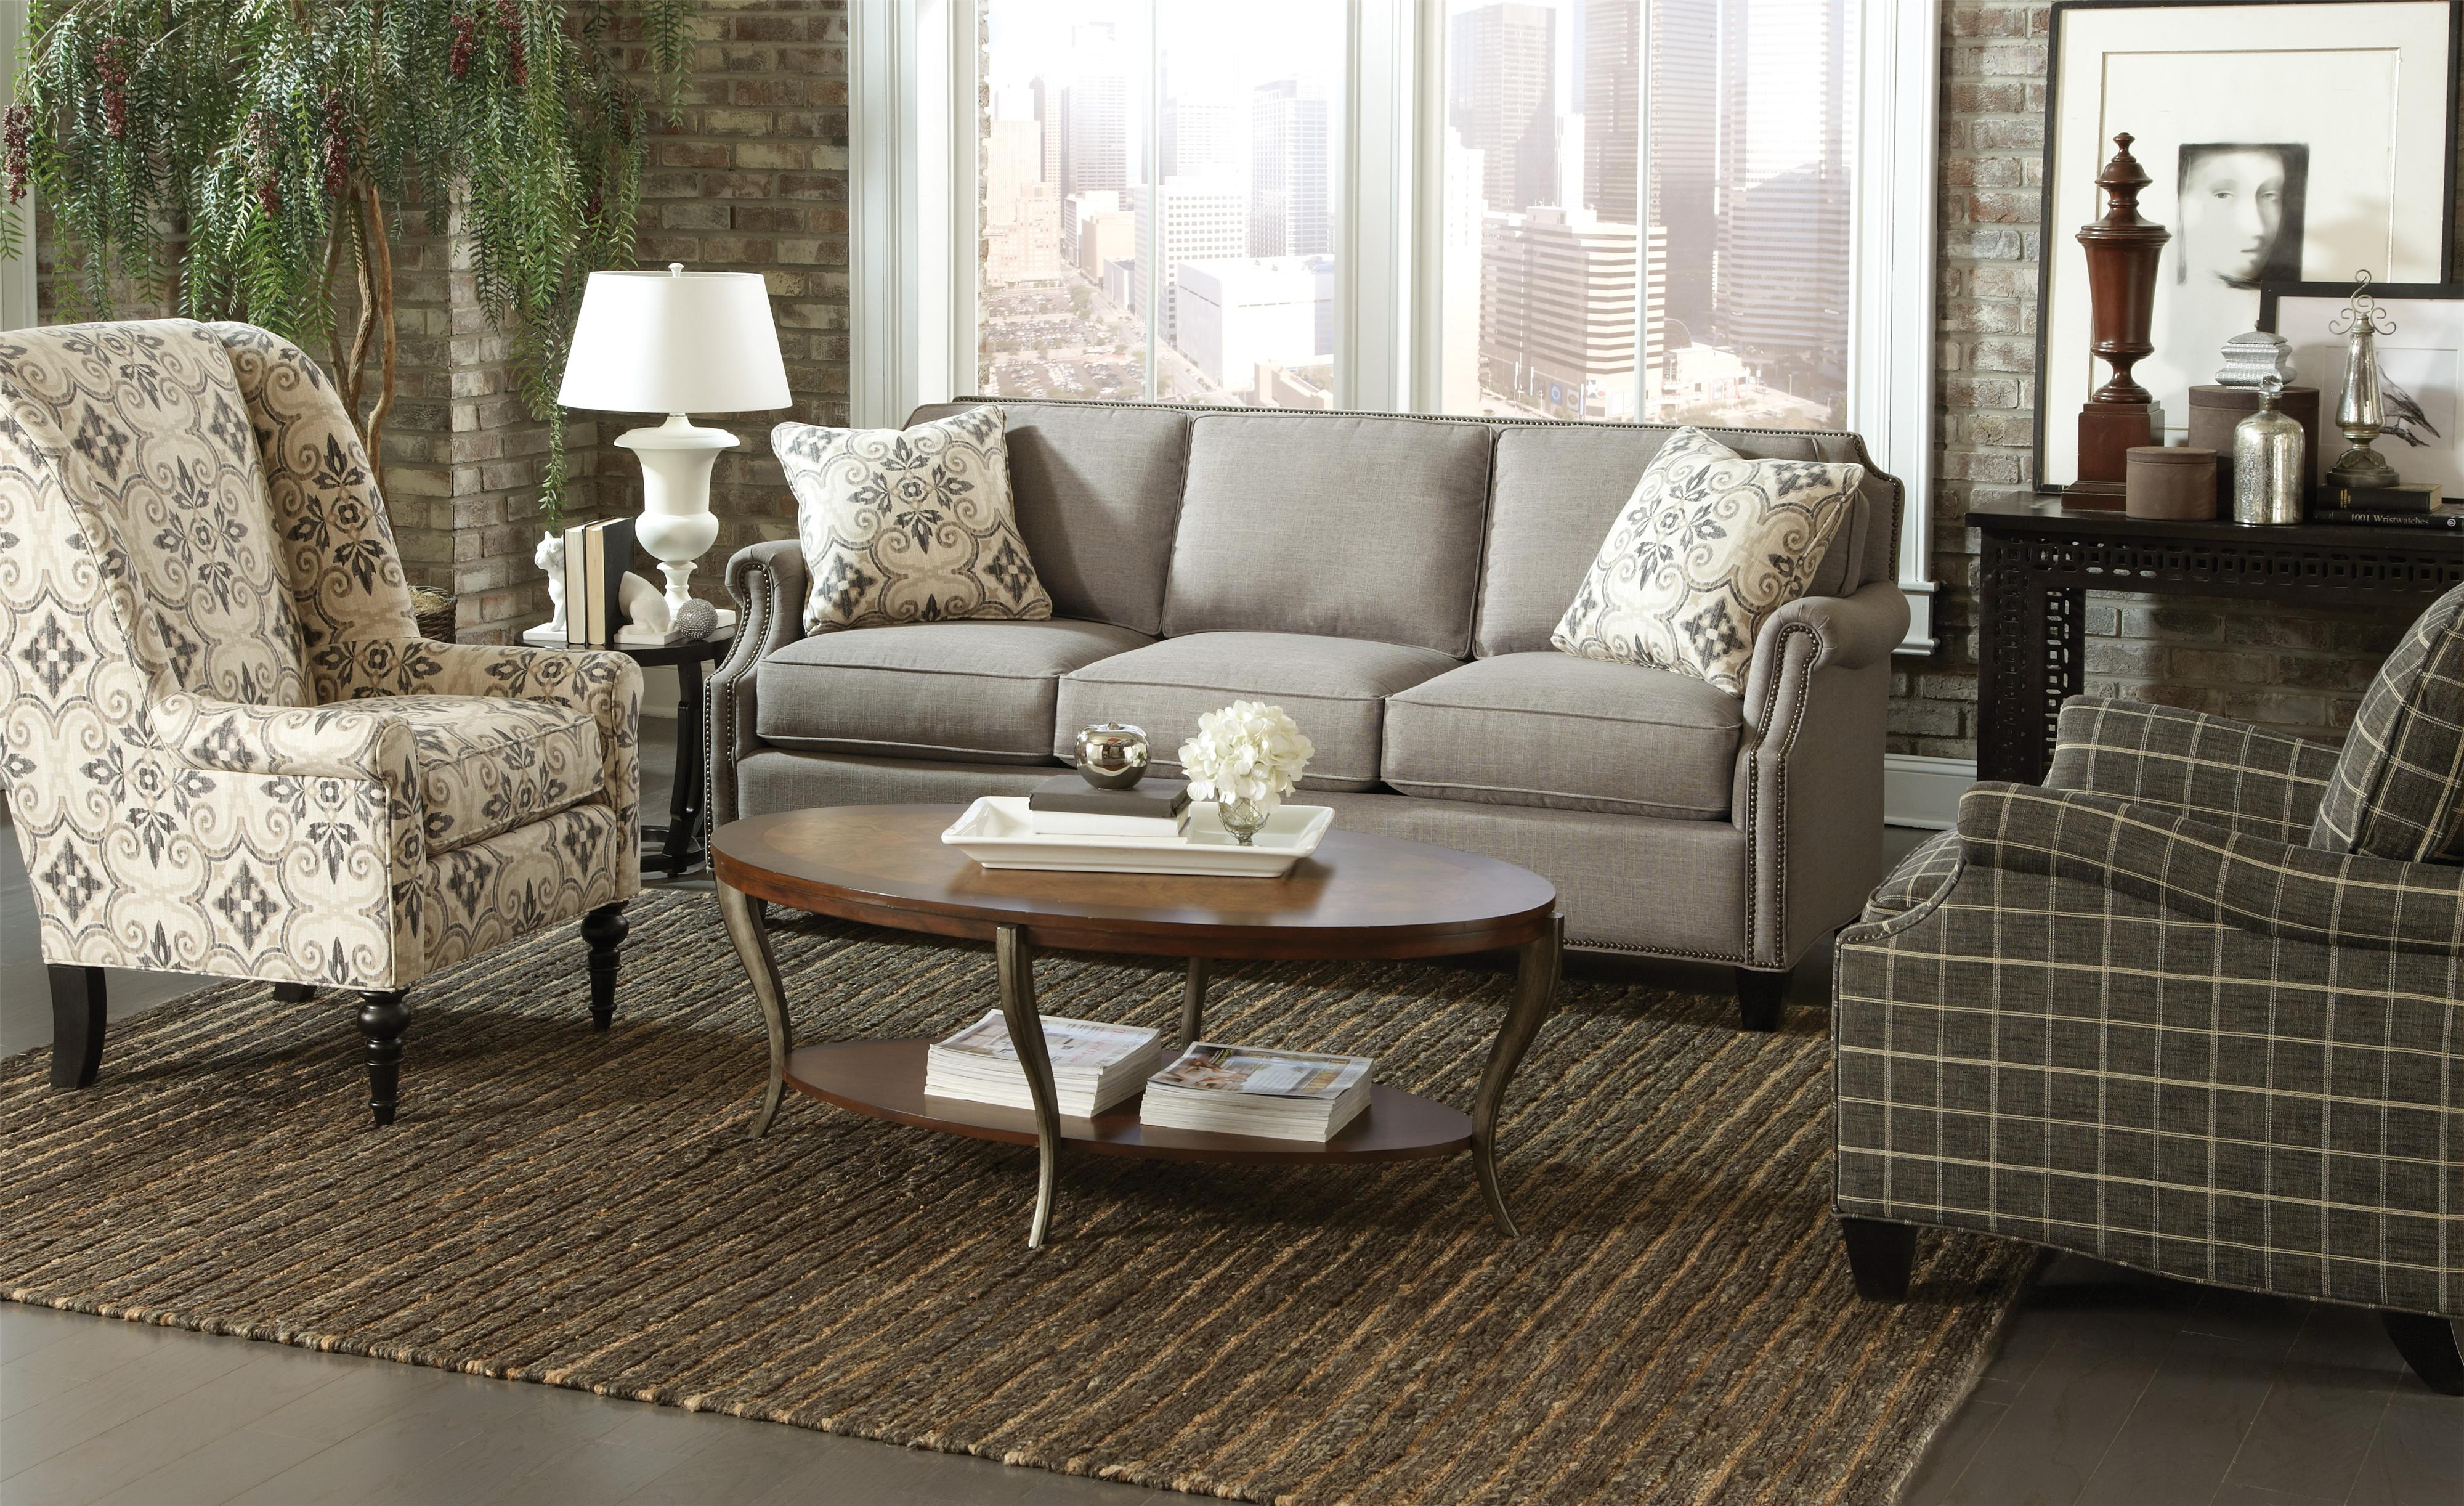 9383 Stationary Living Room Group by Craftmaster at Esprit Decor Home Furnishings